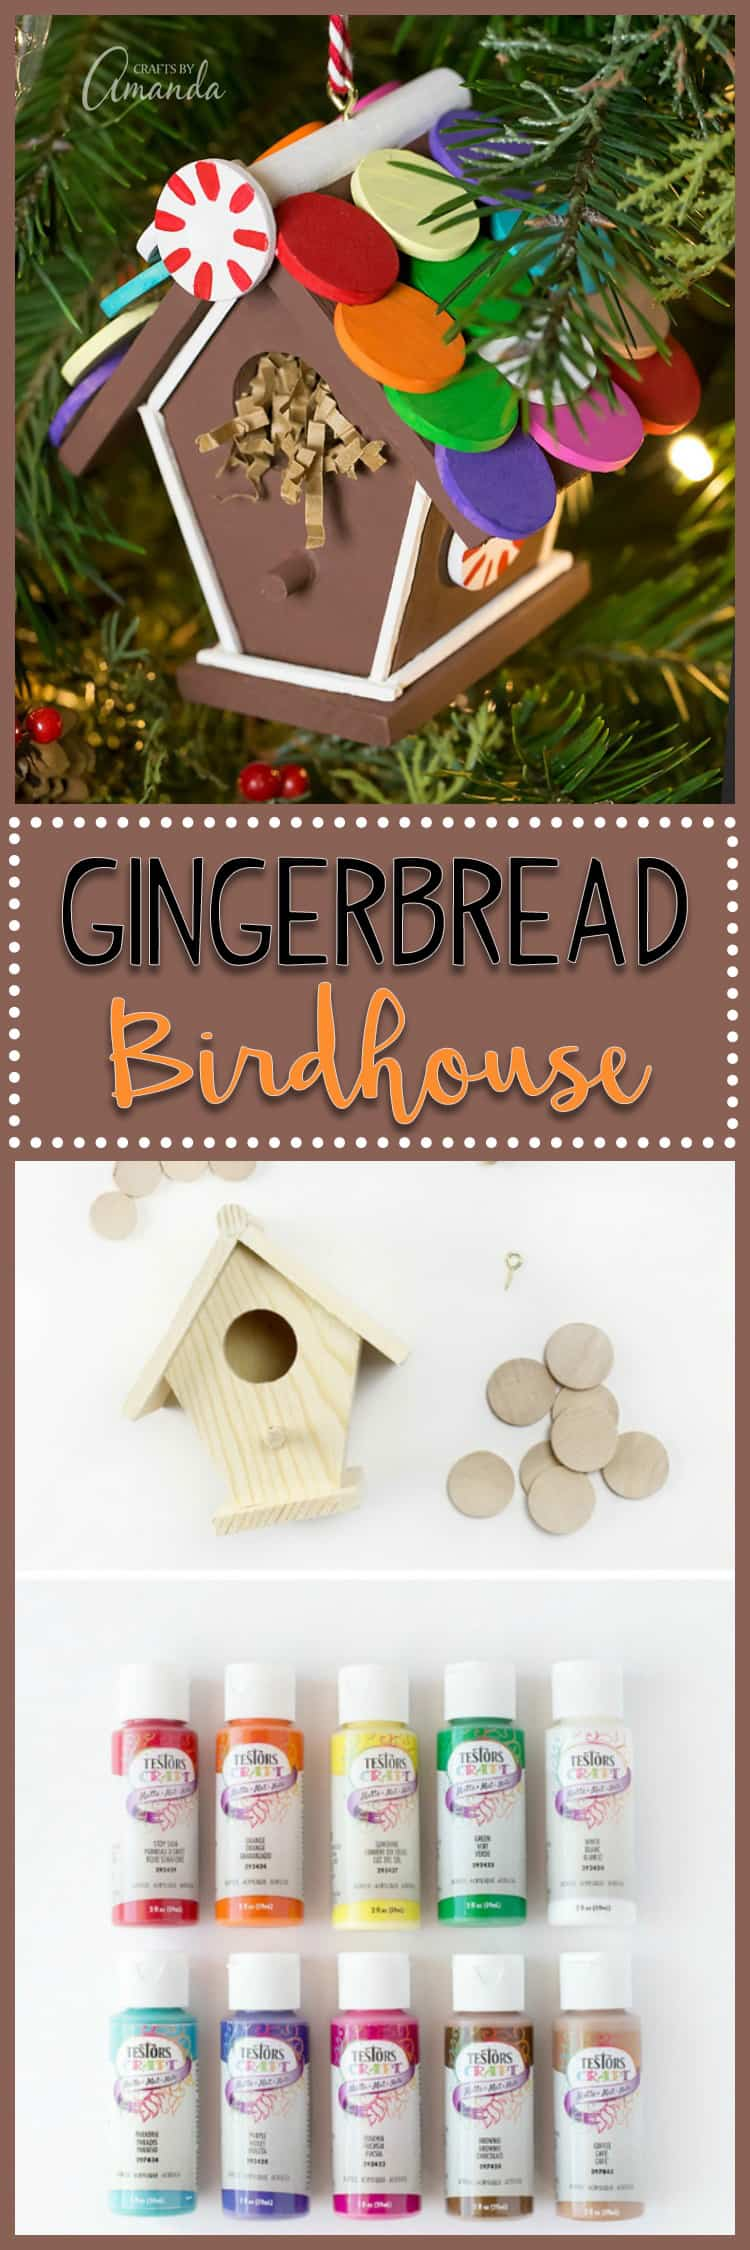 Just in time for the holidays, learn how to make a colorful Gingerbread Birdhouse Ornament from a miniature craft birdhouse, wooden circles, and paint.